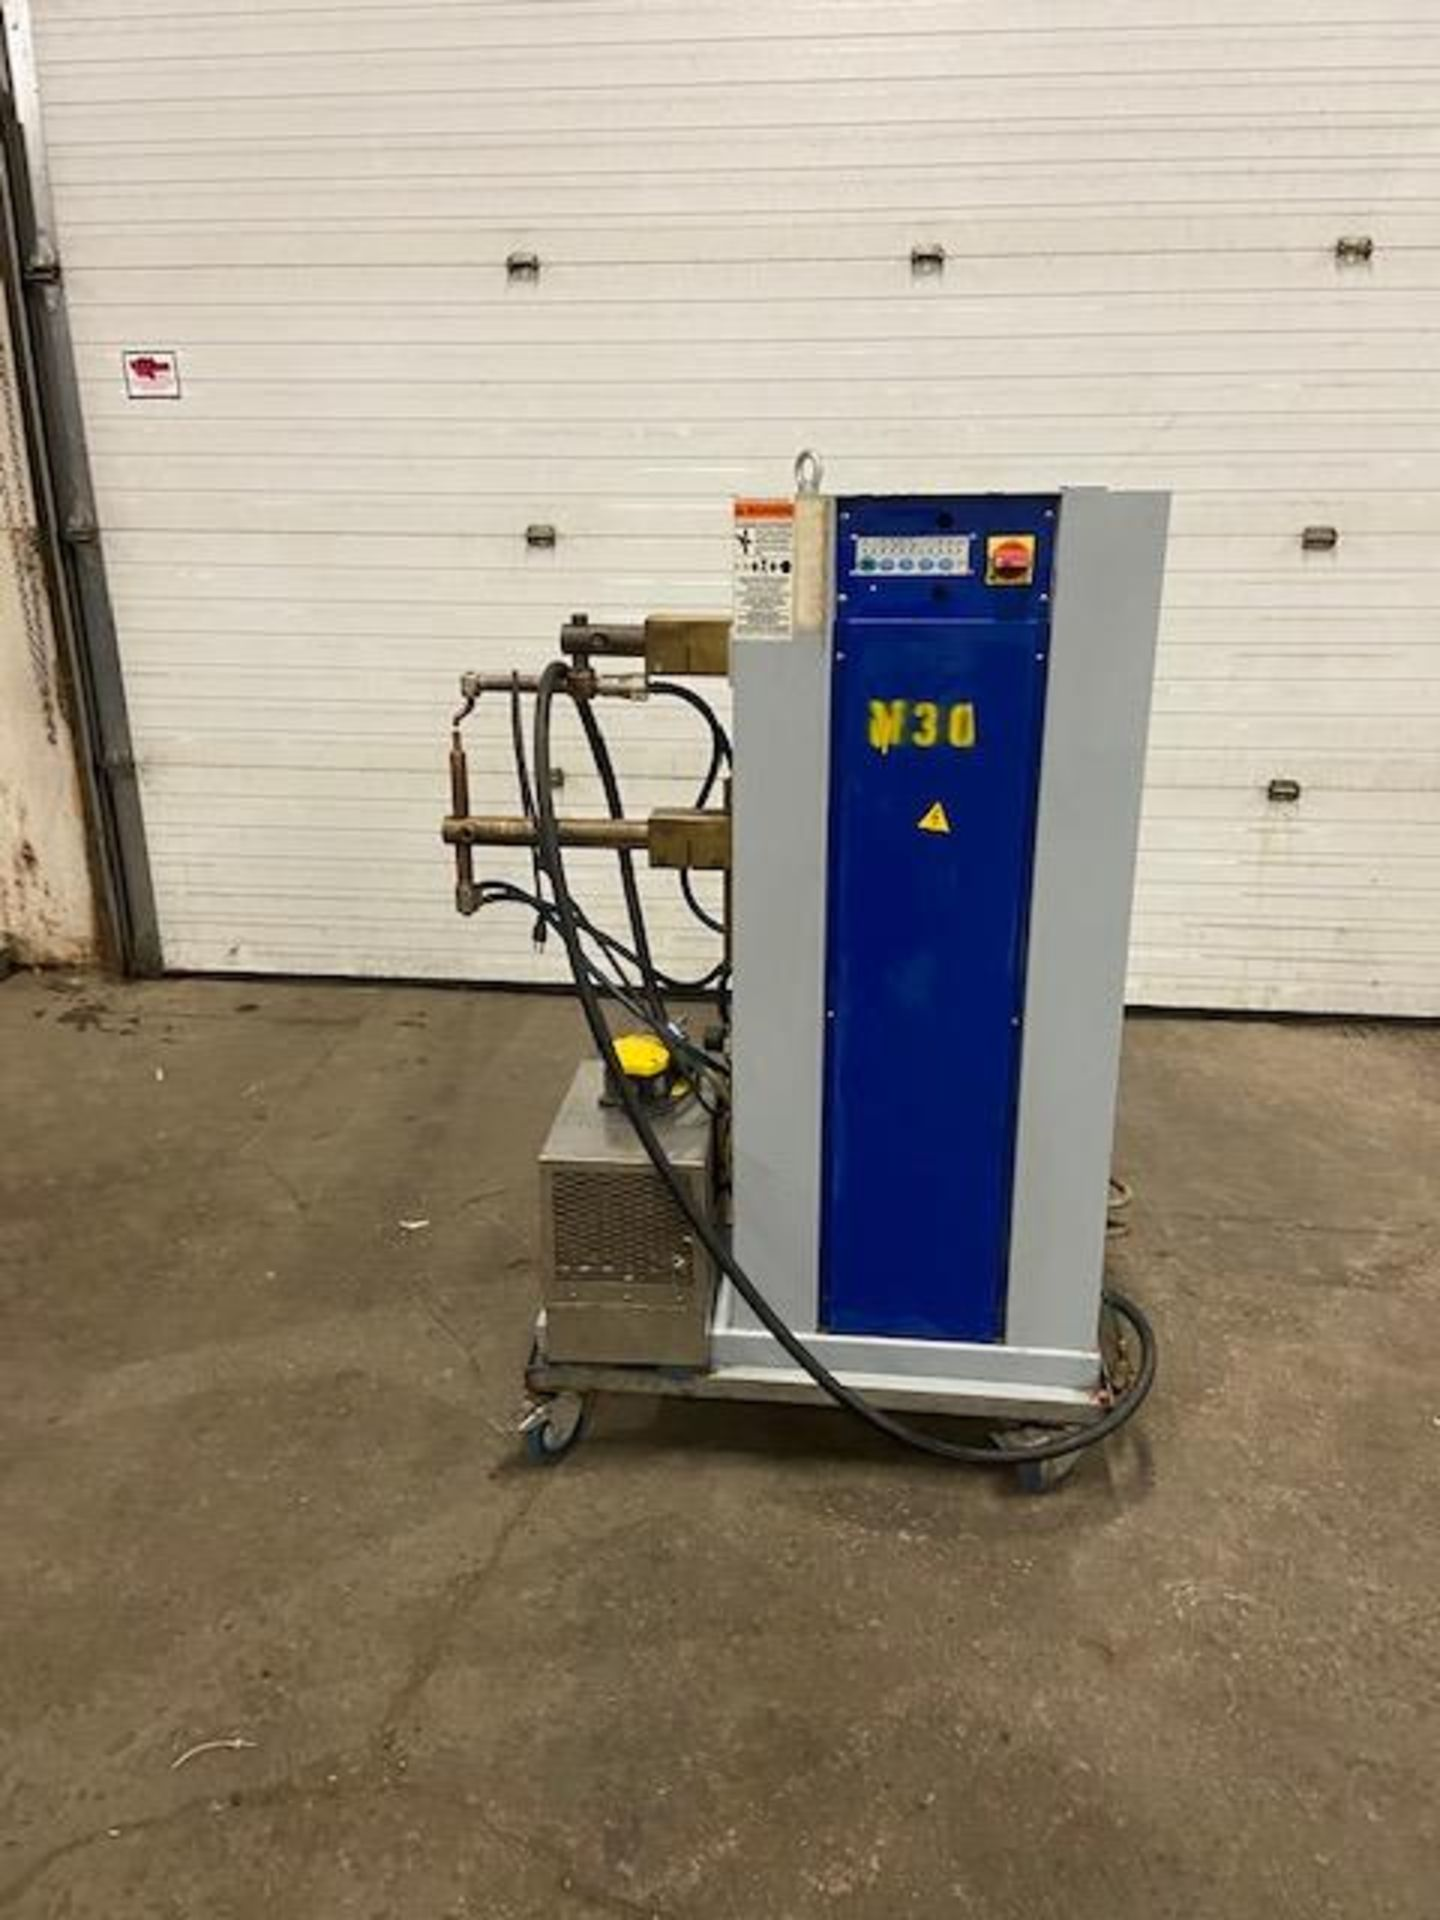 Mawer Spot Welder Unit 25 KVA model PBP162 PEI-POINT Made in Italy - 1 phase complete with foot